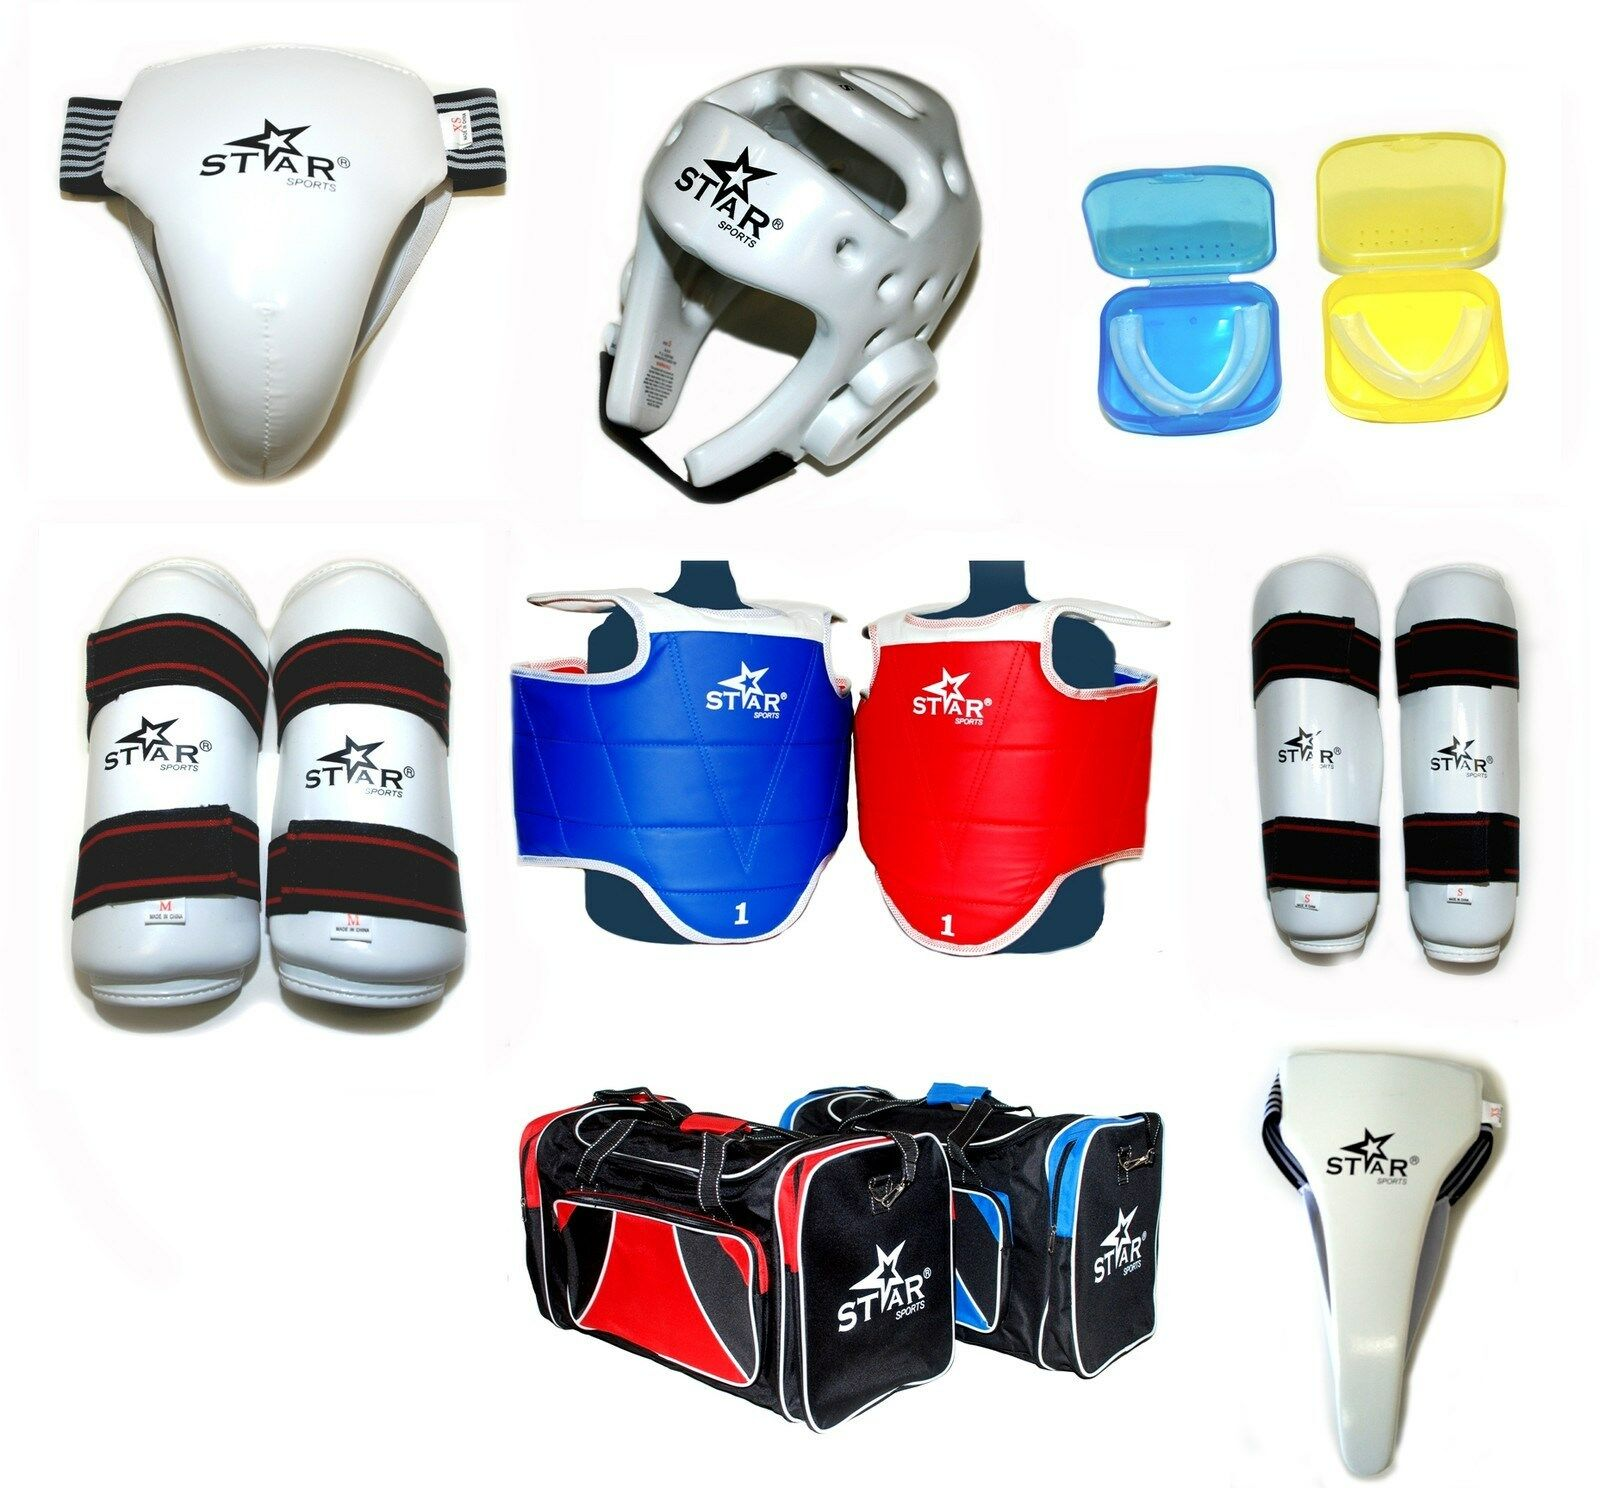 Star Sports WTF Taekwondo  Sparring Gear Predectors Guards complete set 89 pcs  save 60% discount